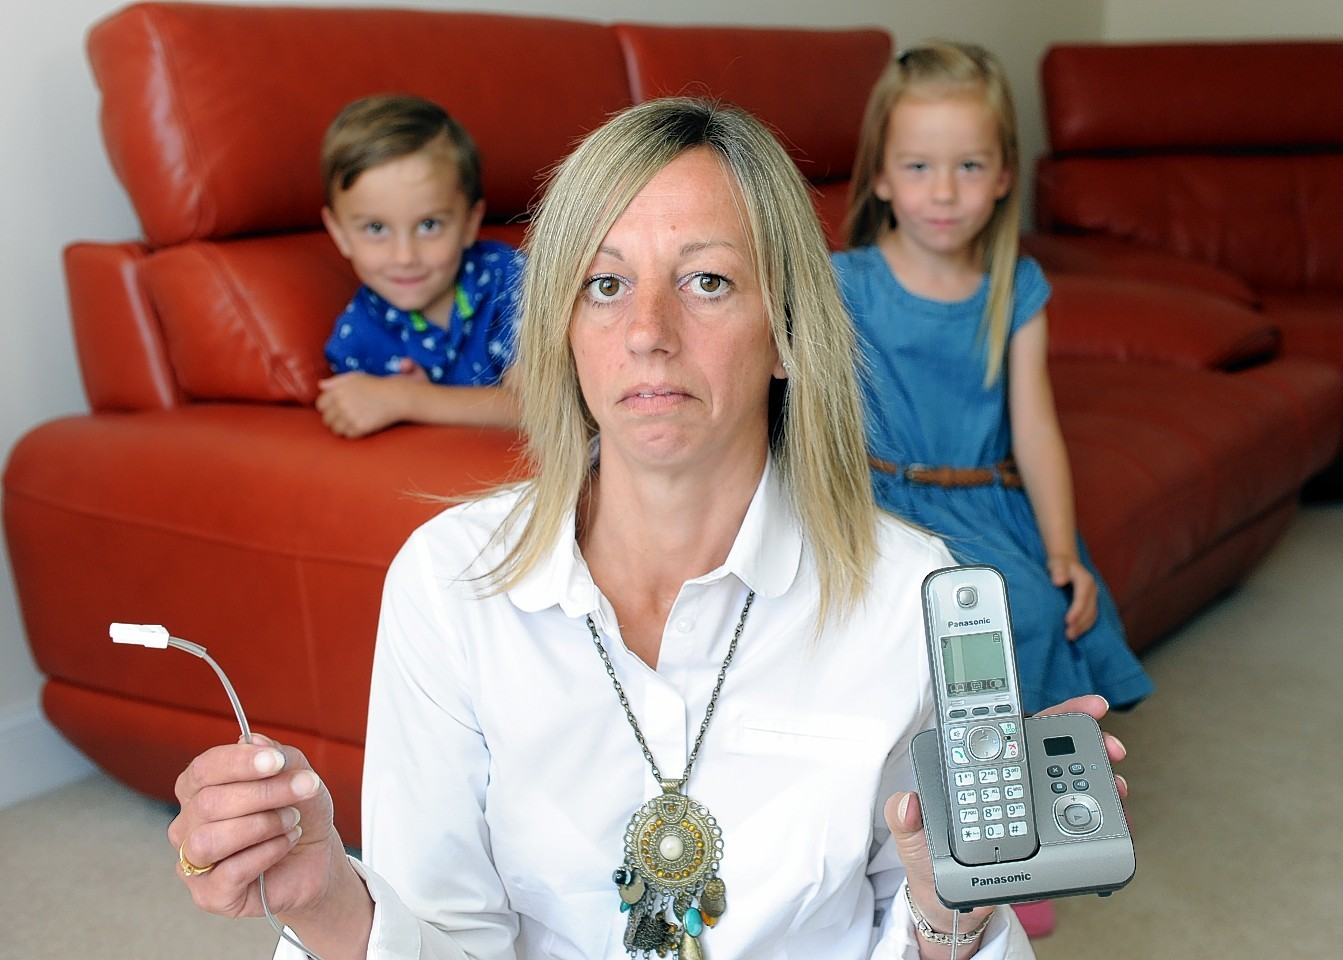 Carol-Ann McKerron and her family have no phone line